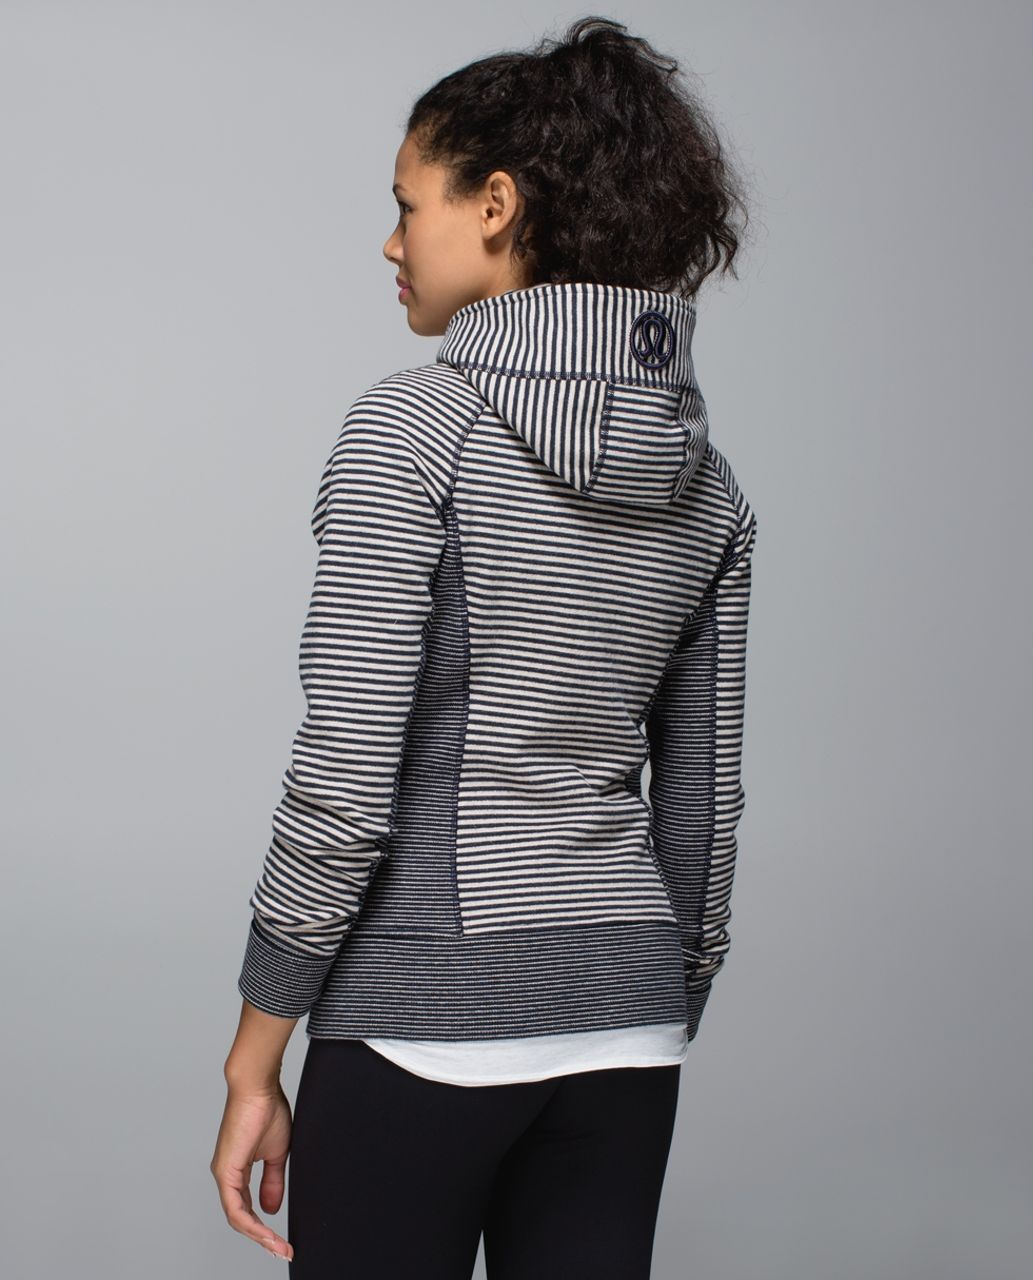 Lululemon Scuba Hoodie II - Maple Stripe Heathered Inkwell Heathered Mojave Tan / Vine Stripe Heathered Inkwell Heathered Mojave Tan